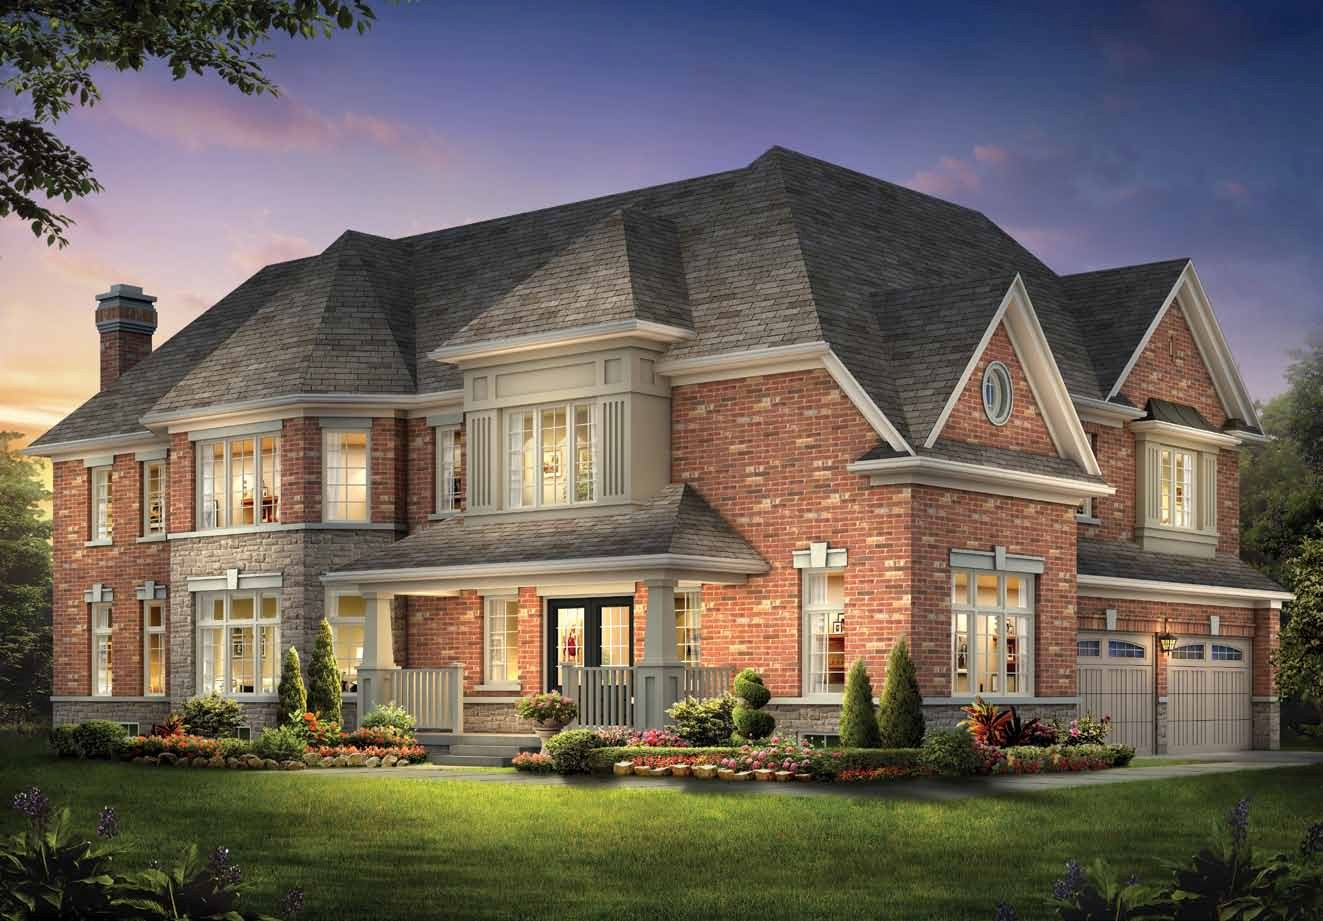 Muirland New Semi Detached Homes for Sale in Brampton Spring Valley Village on Elbern Markell Dr., Lanark Circle, 51 Banbridge Cr., 48 50 French Park Circle, Yardley Cr., 59 Crumlin Cr. Bovaird Dr West, Ashby Field Rd., Williams Parkway, 37 39 Ballyhaise Cres., Mississauga Rd.